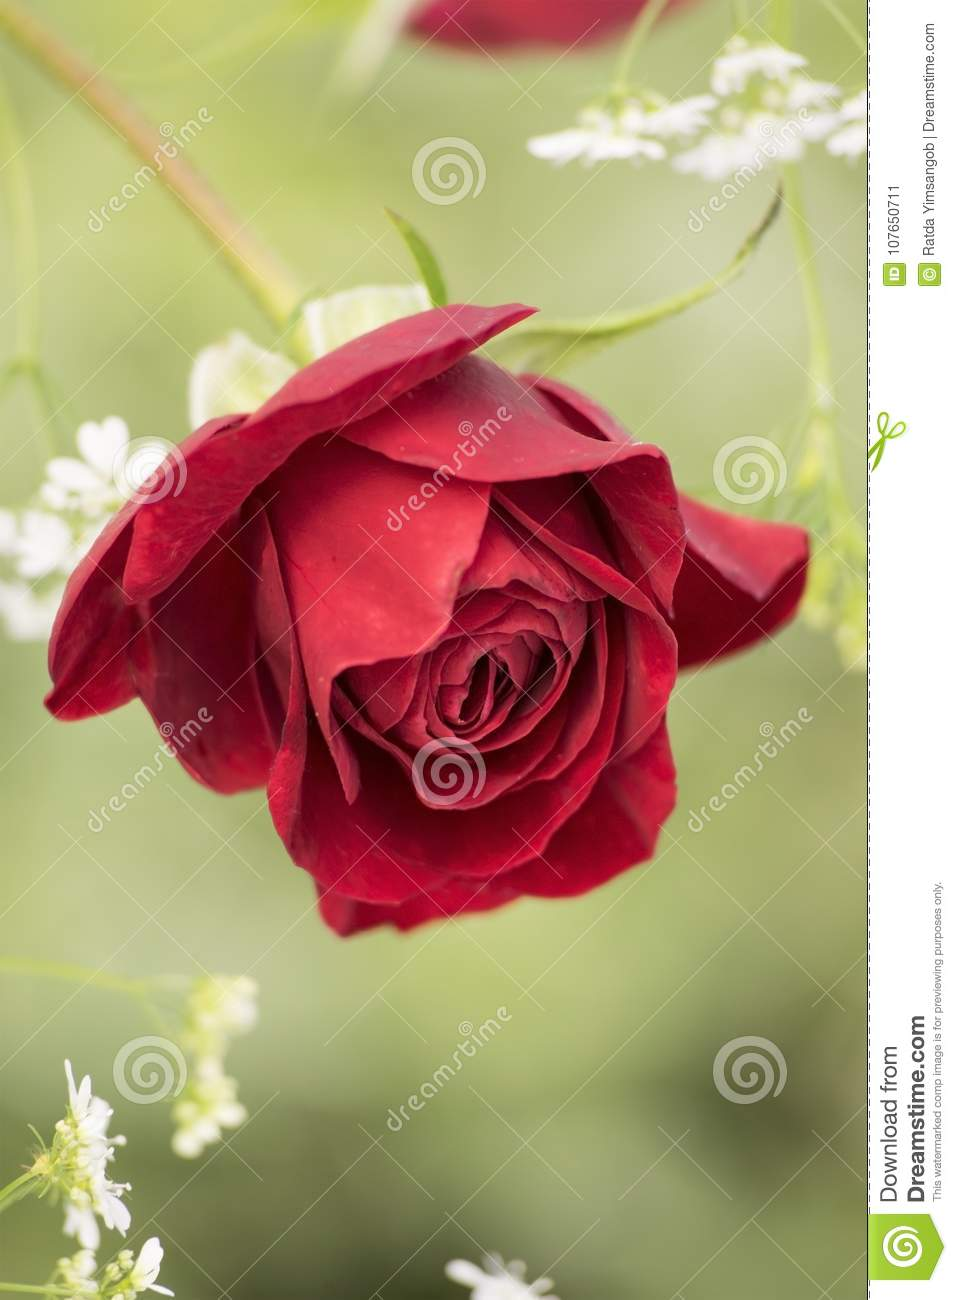 Beautiful Red Rose With Lovely White Flowers Stock Image Image Of